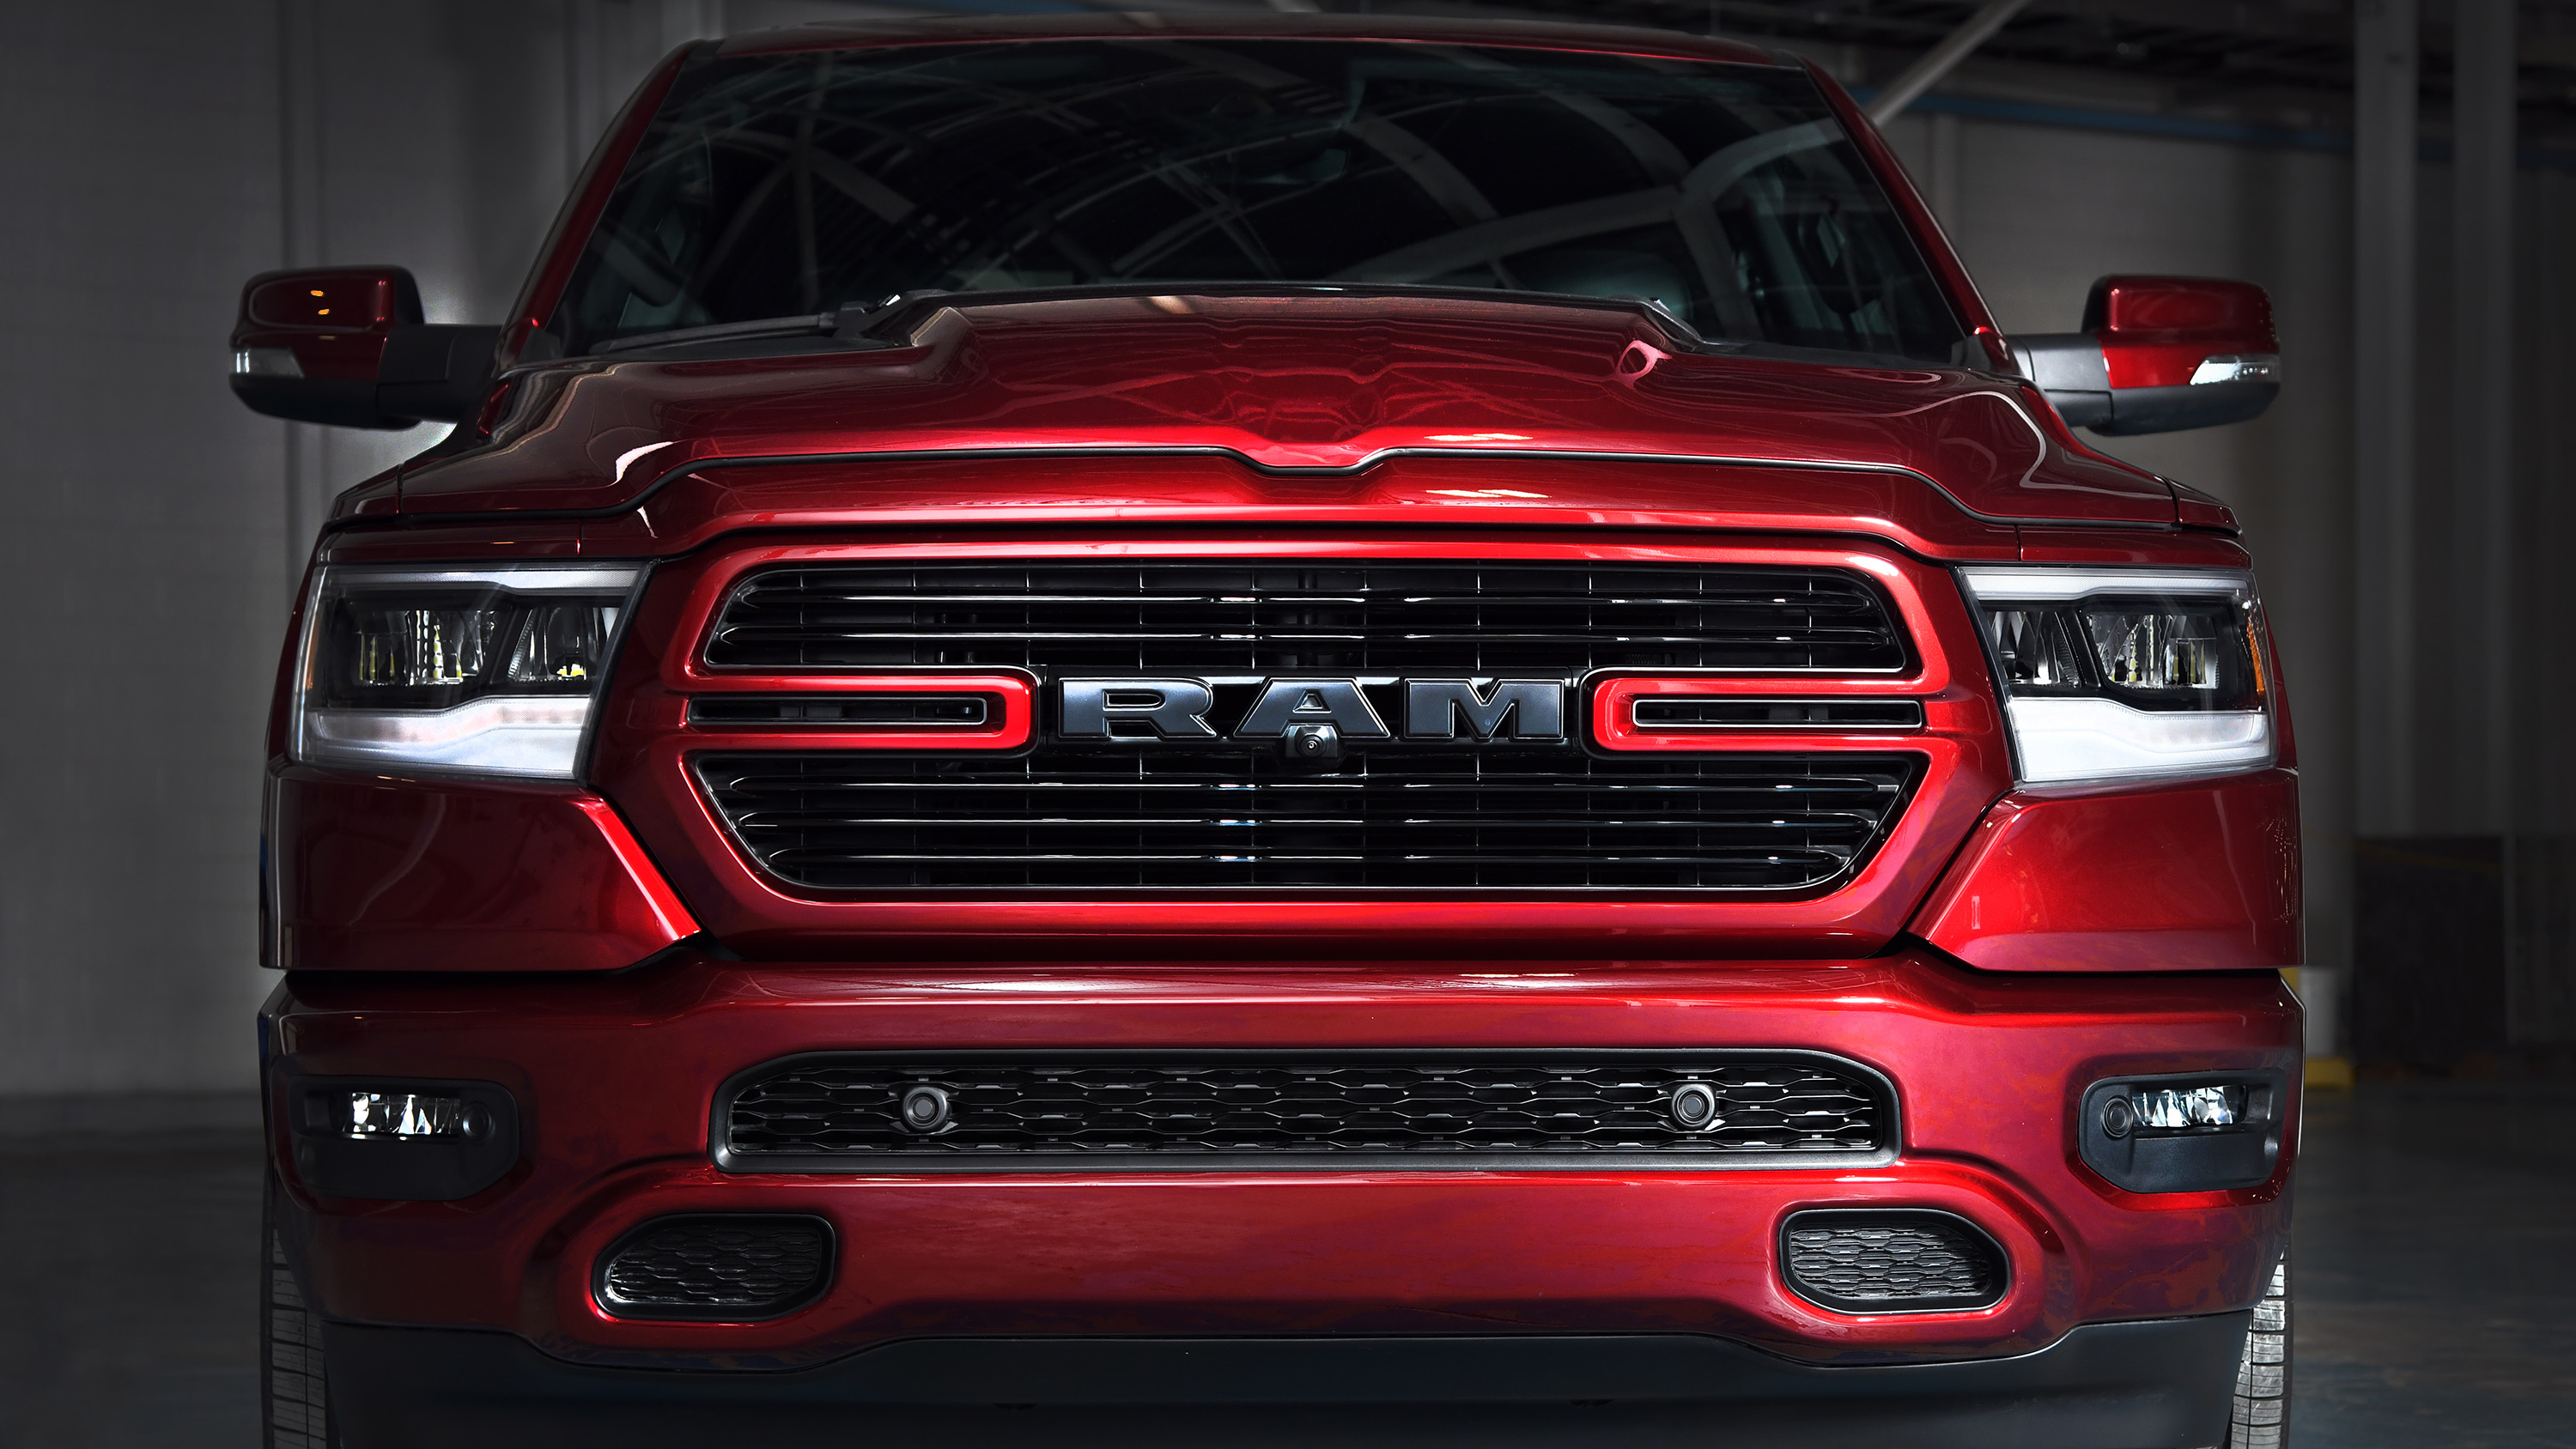 Ram 1500 Truck Desktop Wallpapers Wallpaper Cave